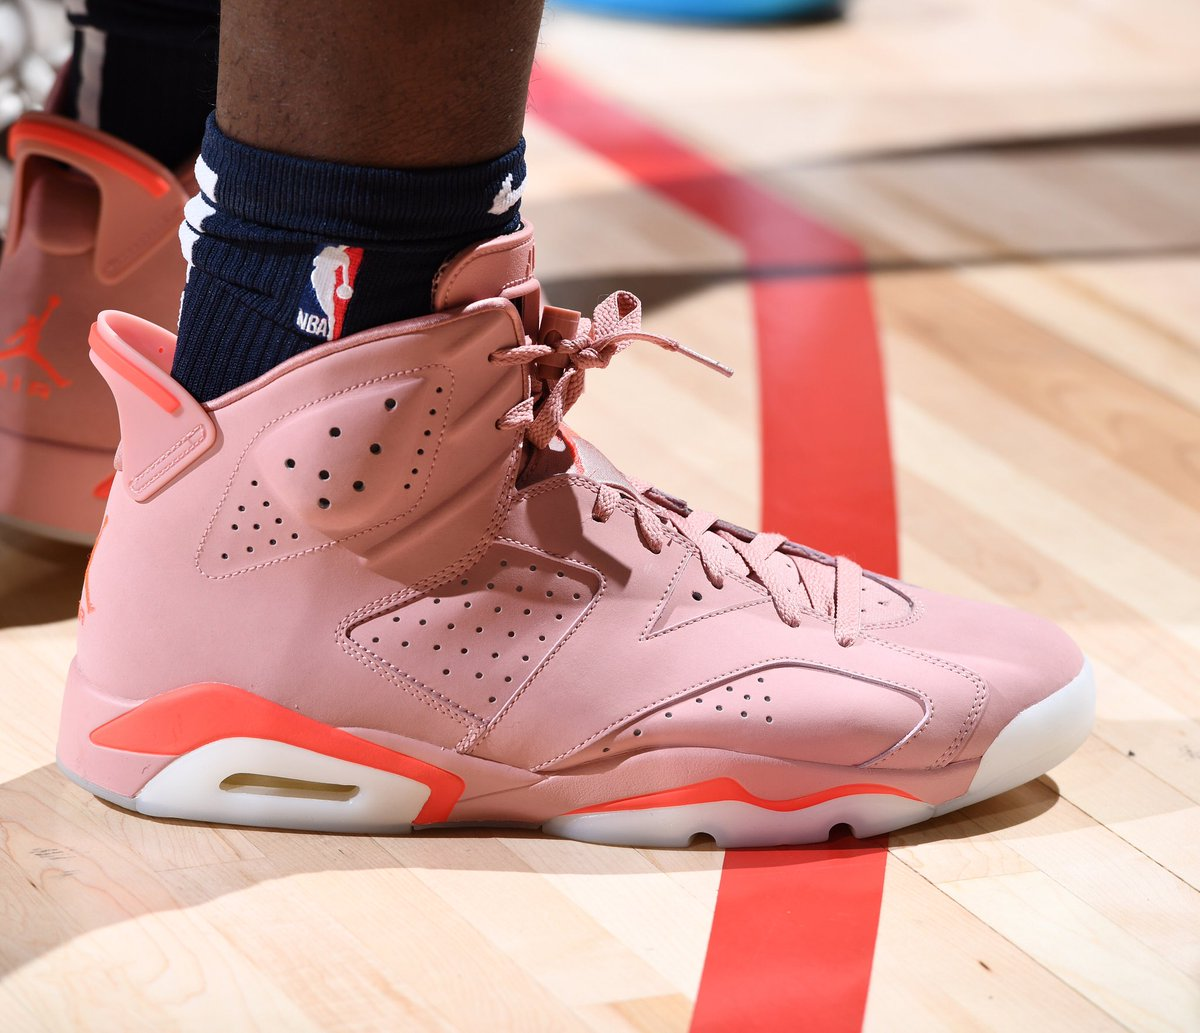 🔥 @Zionwilliamson breaks out the Aleali May x Air Jordan 6 Millennial Pink at the @NBASummerLeague in Las Vegas! #NBAKicks